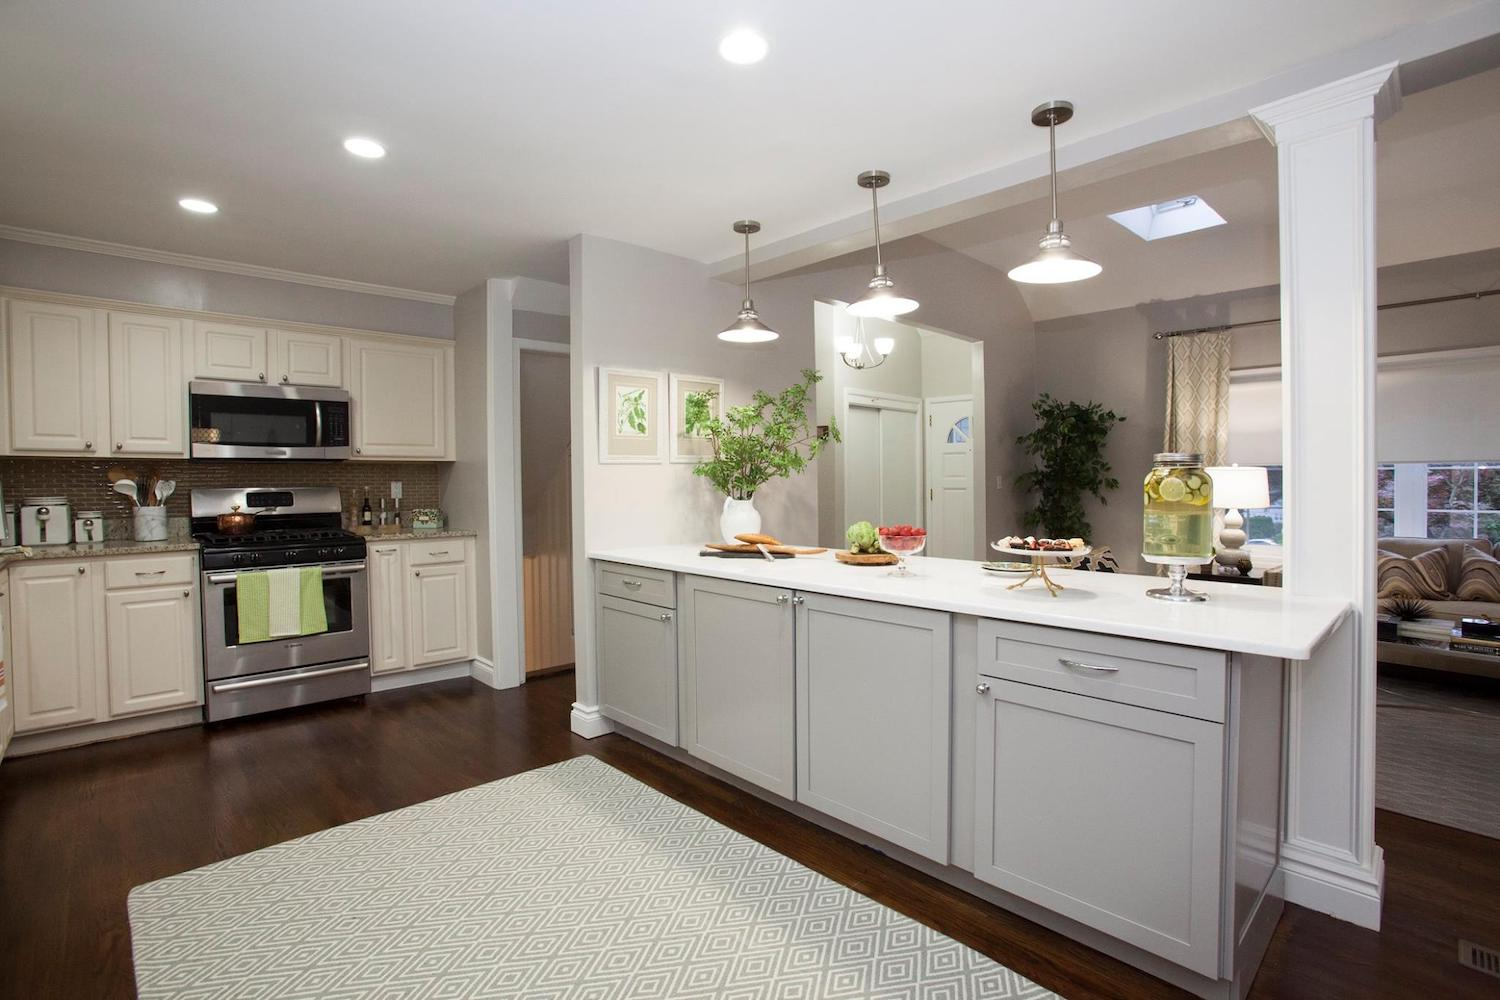 7 Carpetrends Projects Property Brothers